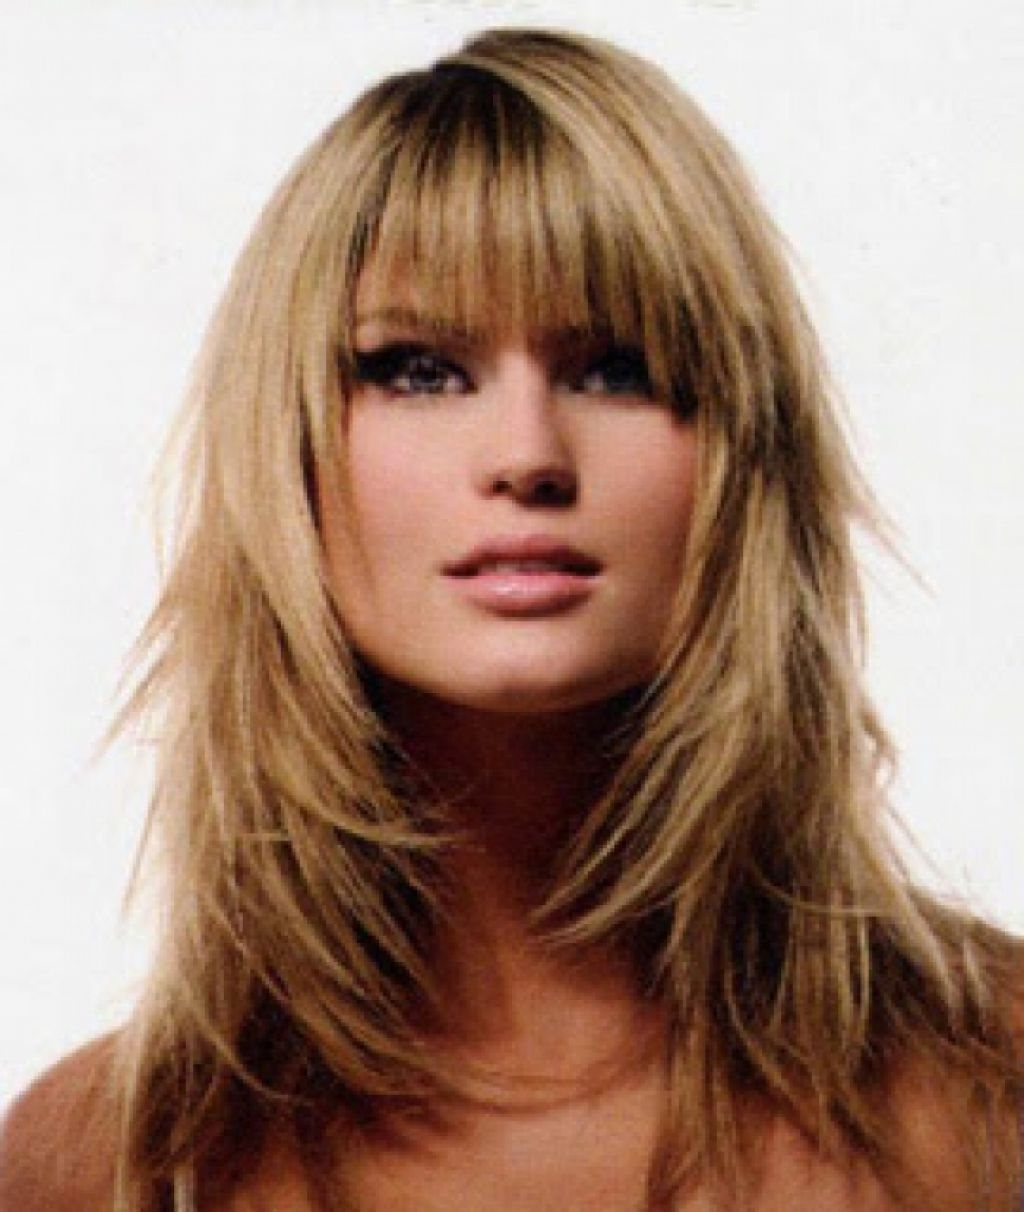 Best Medium Shaggy Haircuts Ideas With Bangs And Layers Side View Regarding Favorite Shaggy Bangs Long Hair (View 5 of 15)